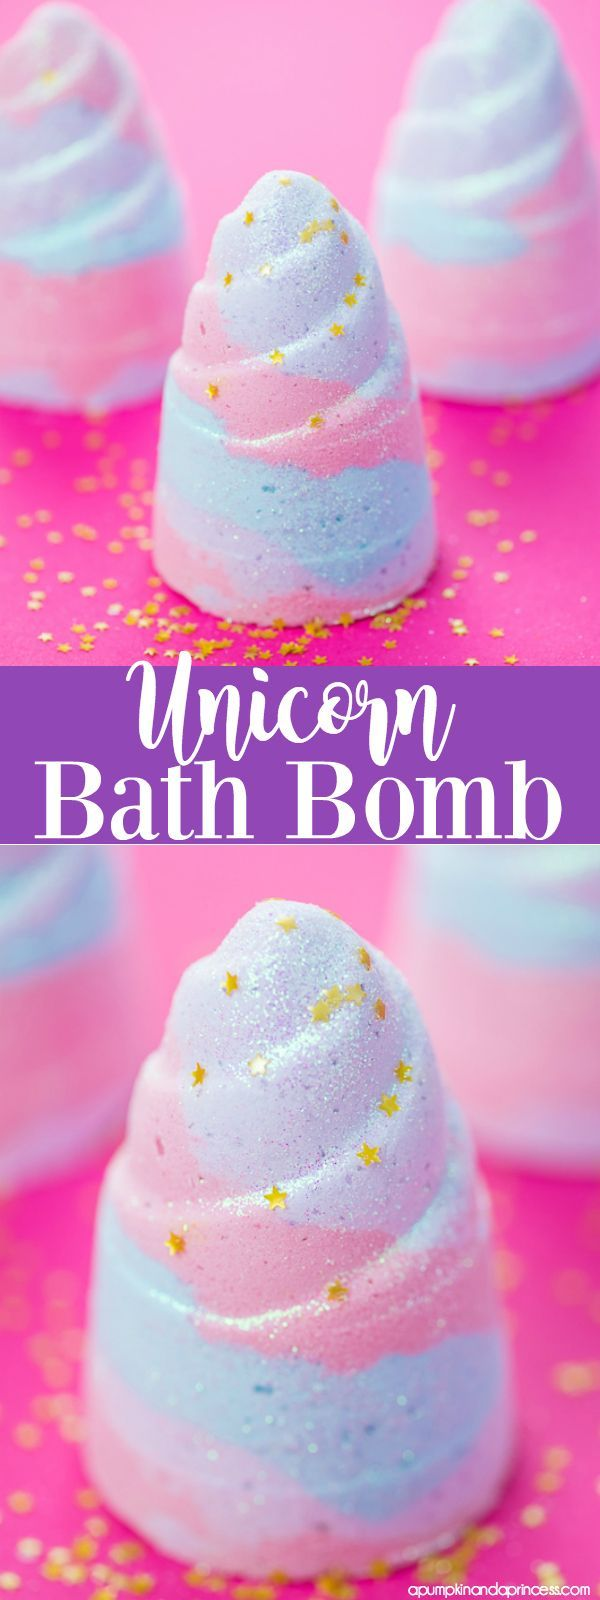 best 25+ bath bomb recipes ideas on pinterest | diy bath bombs